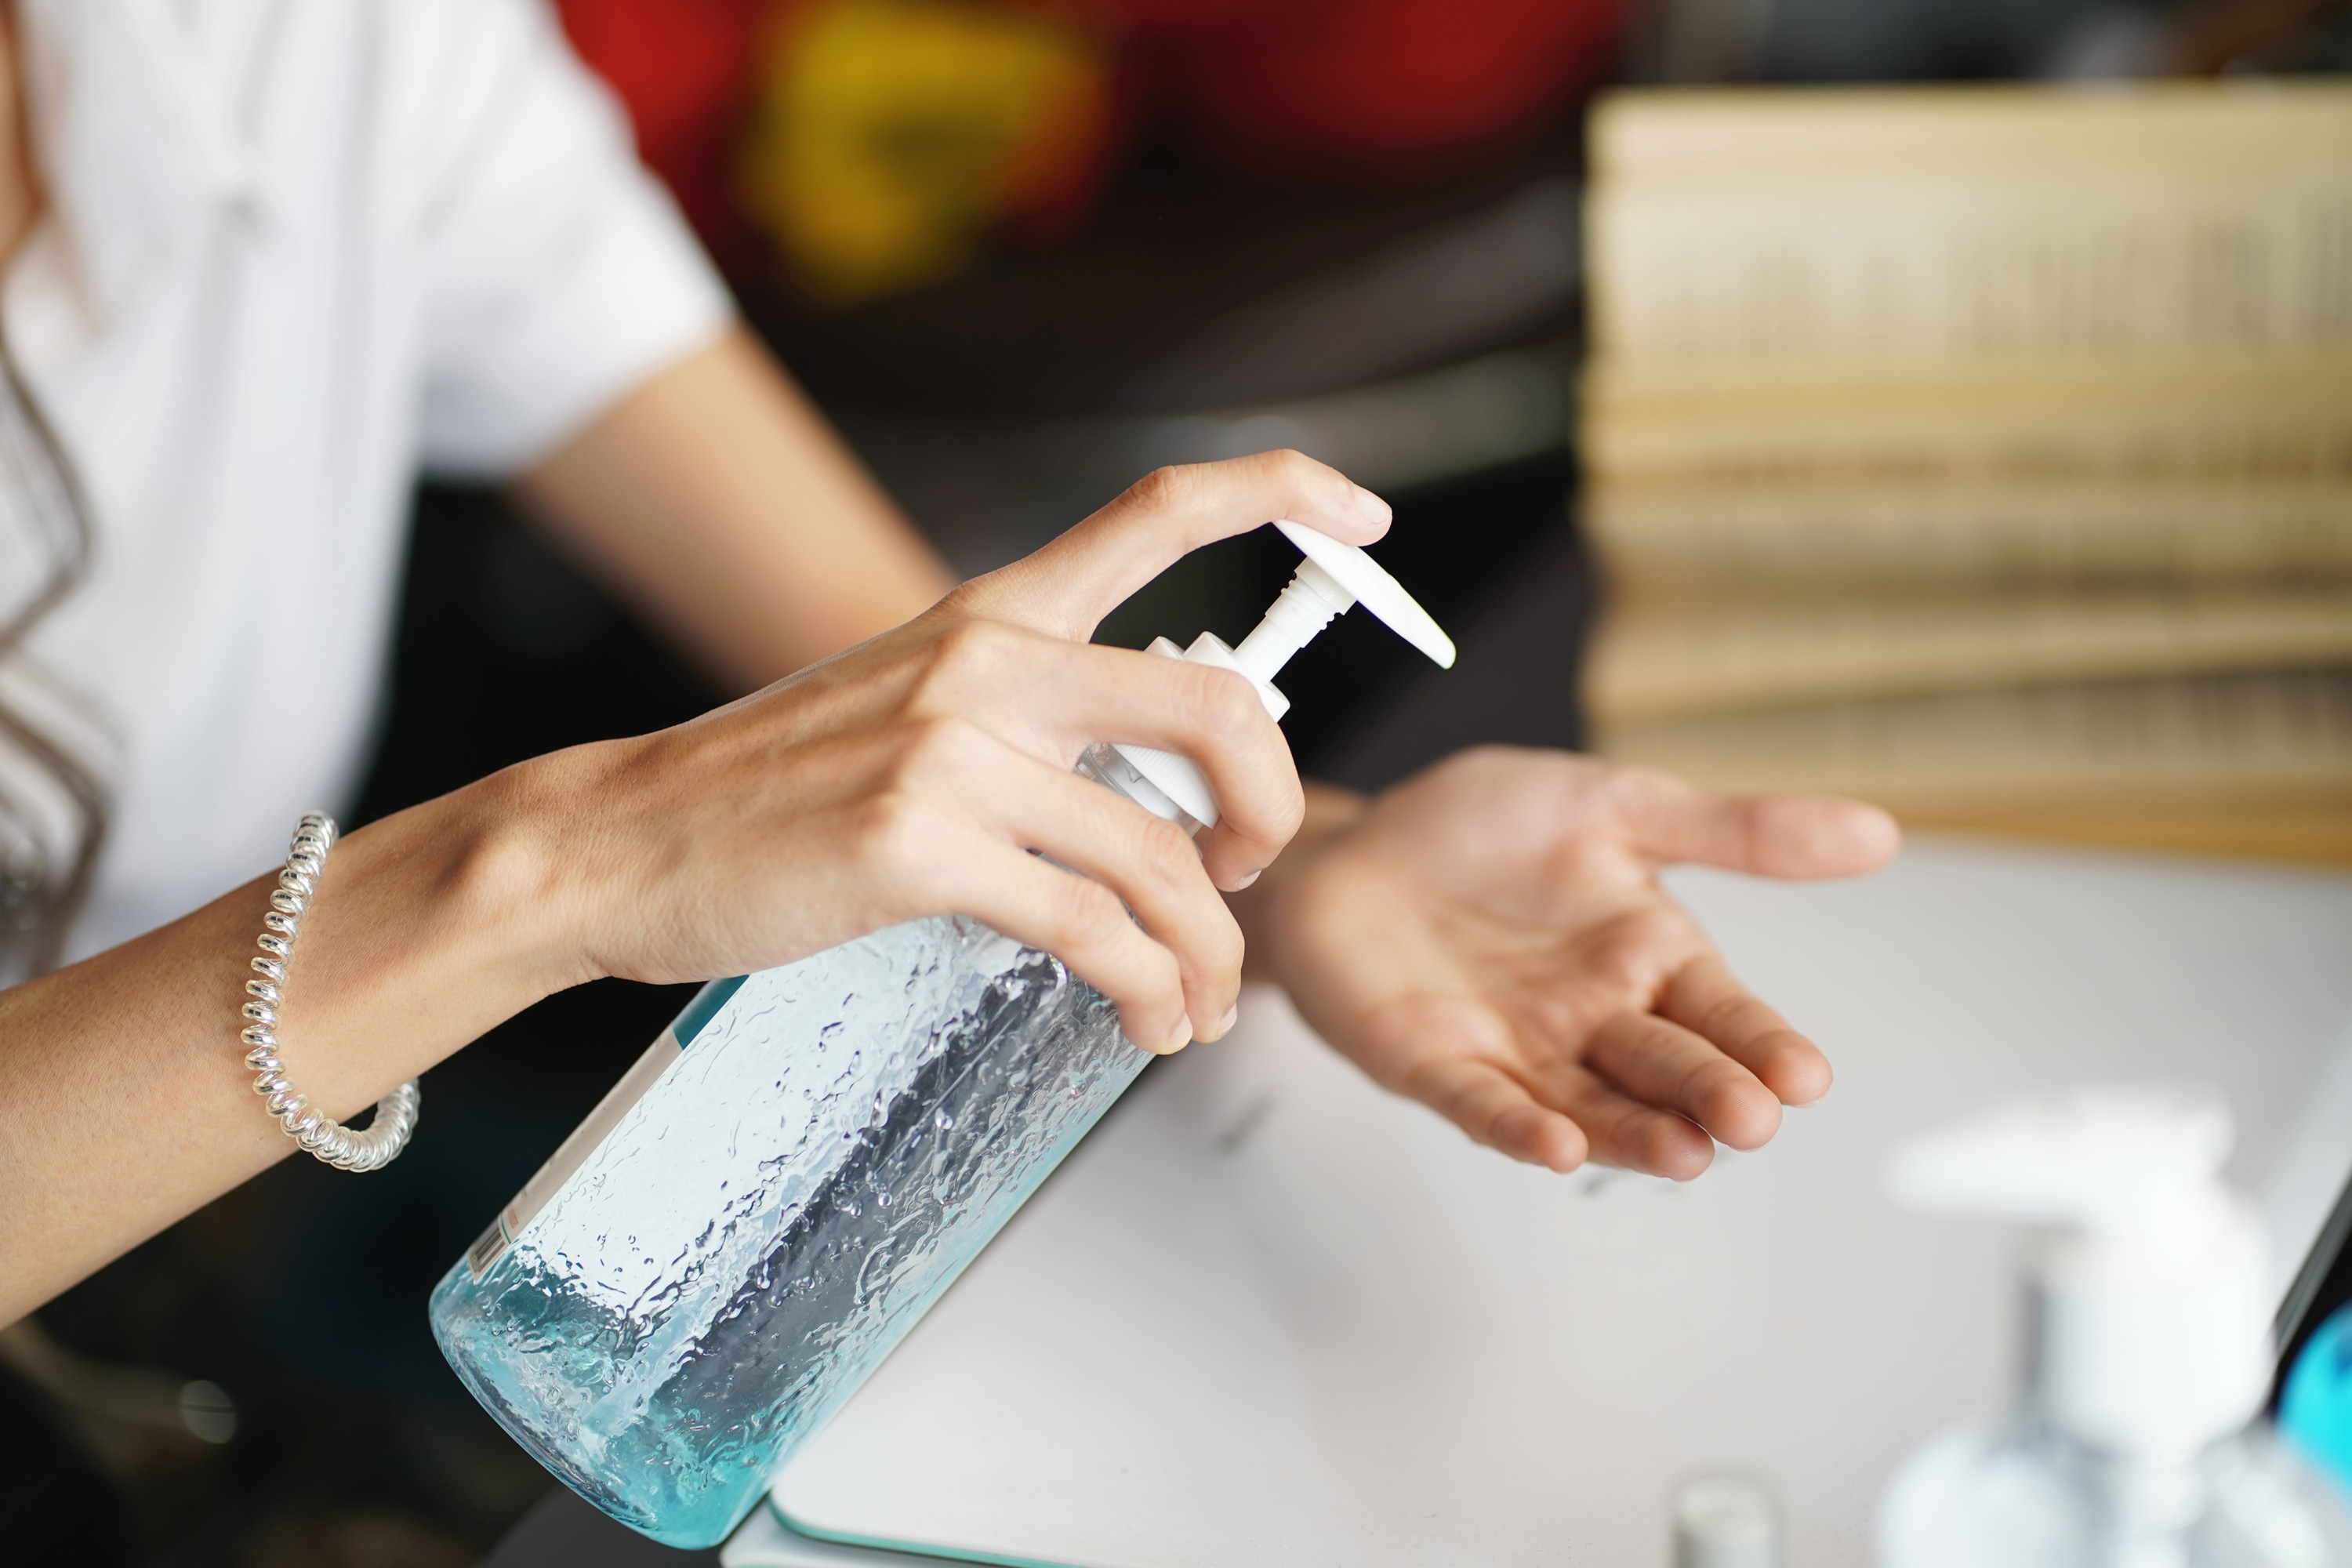 The FDA's list of dangerous hand sanitizers has now grown to more than 100